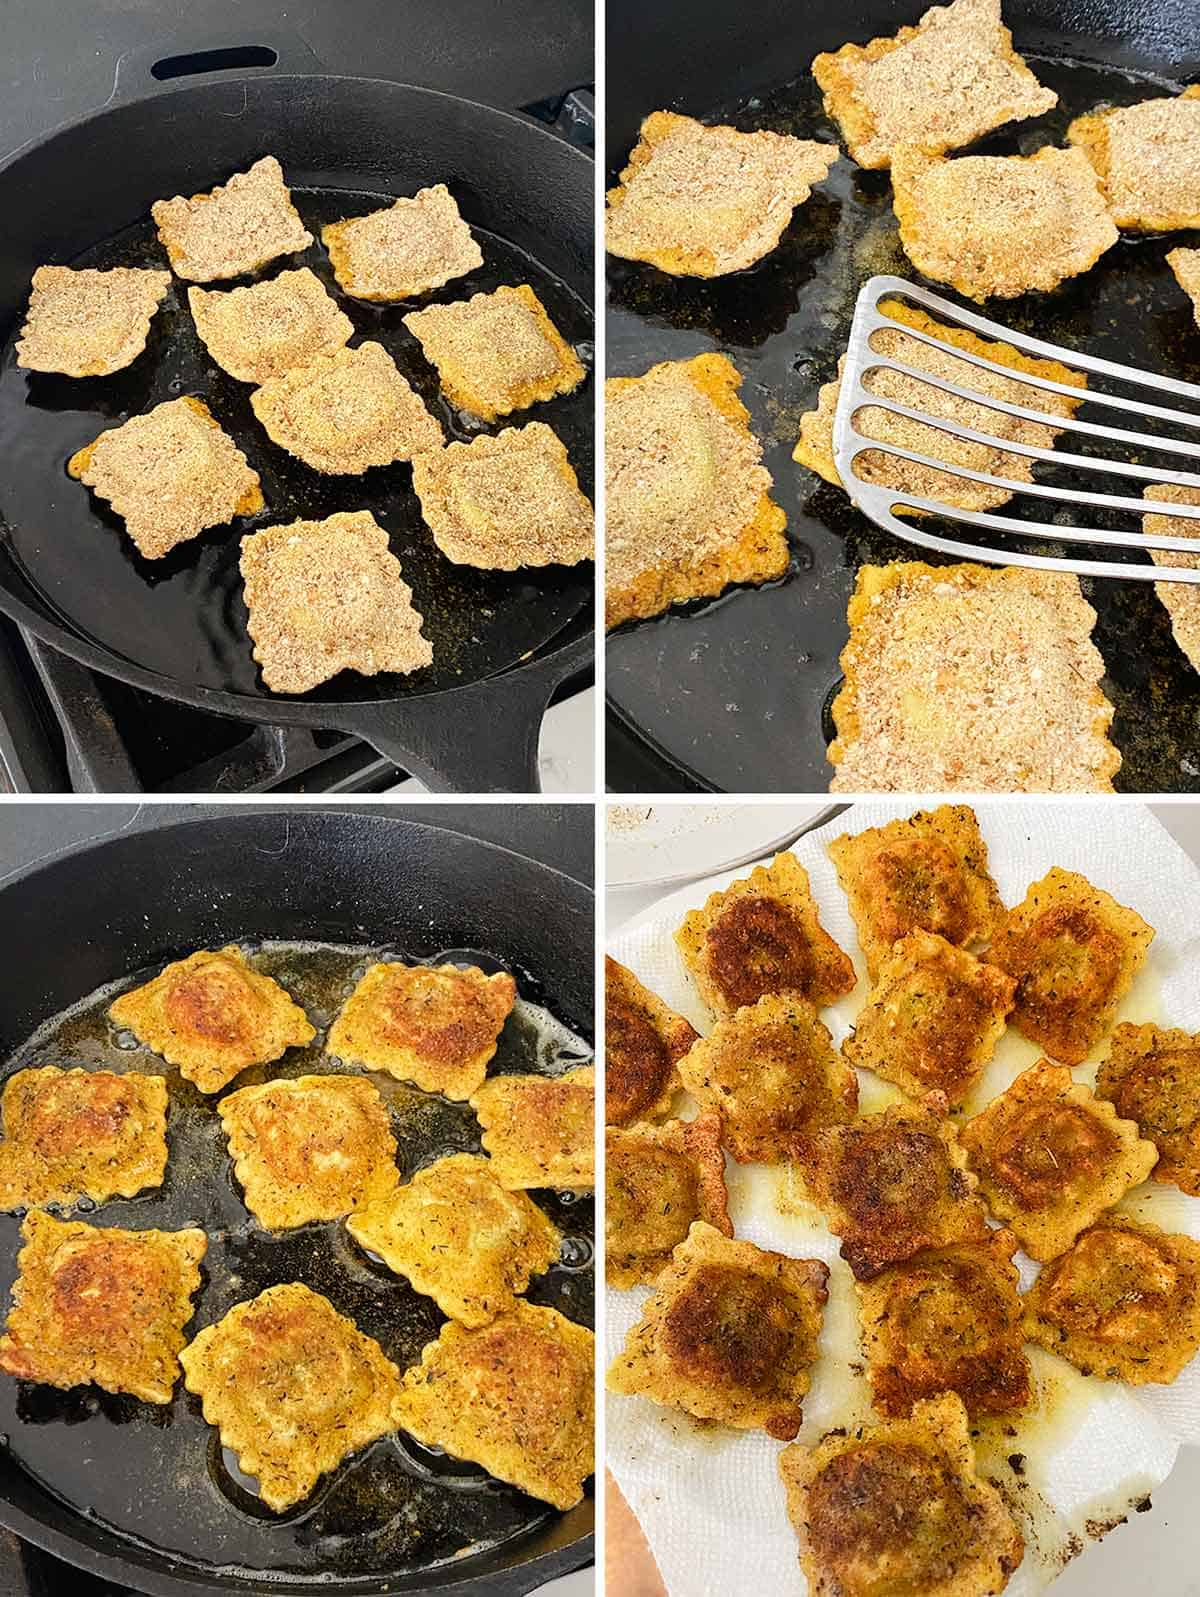 Process collage showing how to pan fry toasted ravioli in a cast iron skillet.